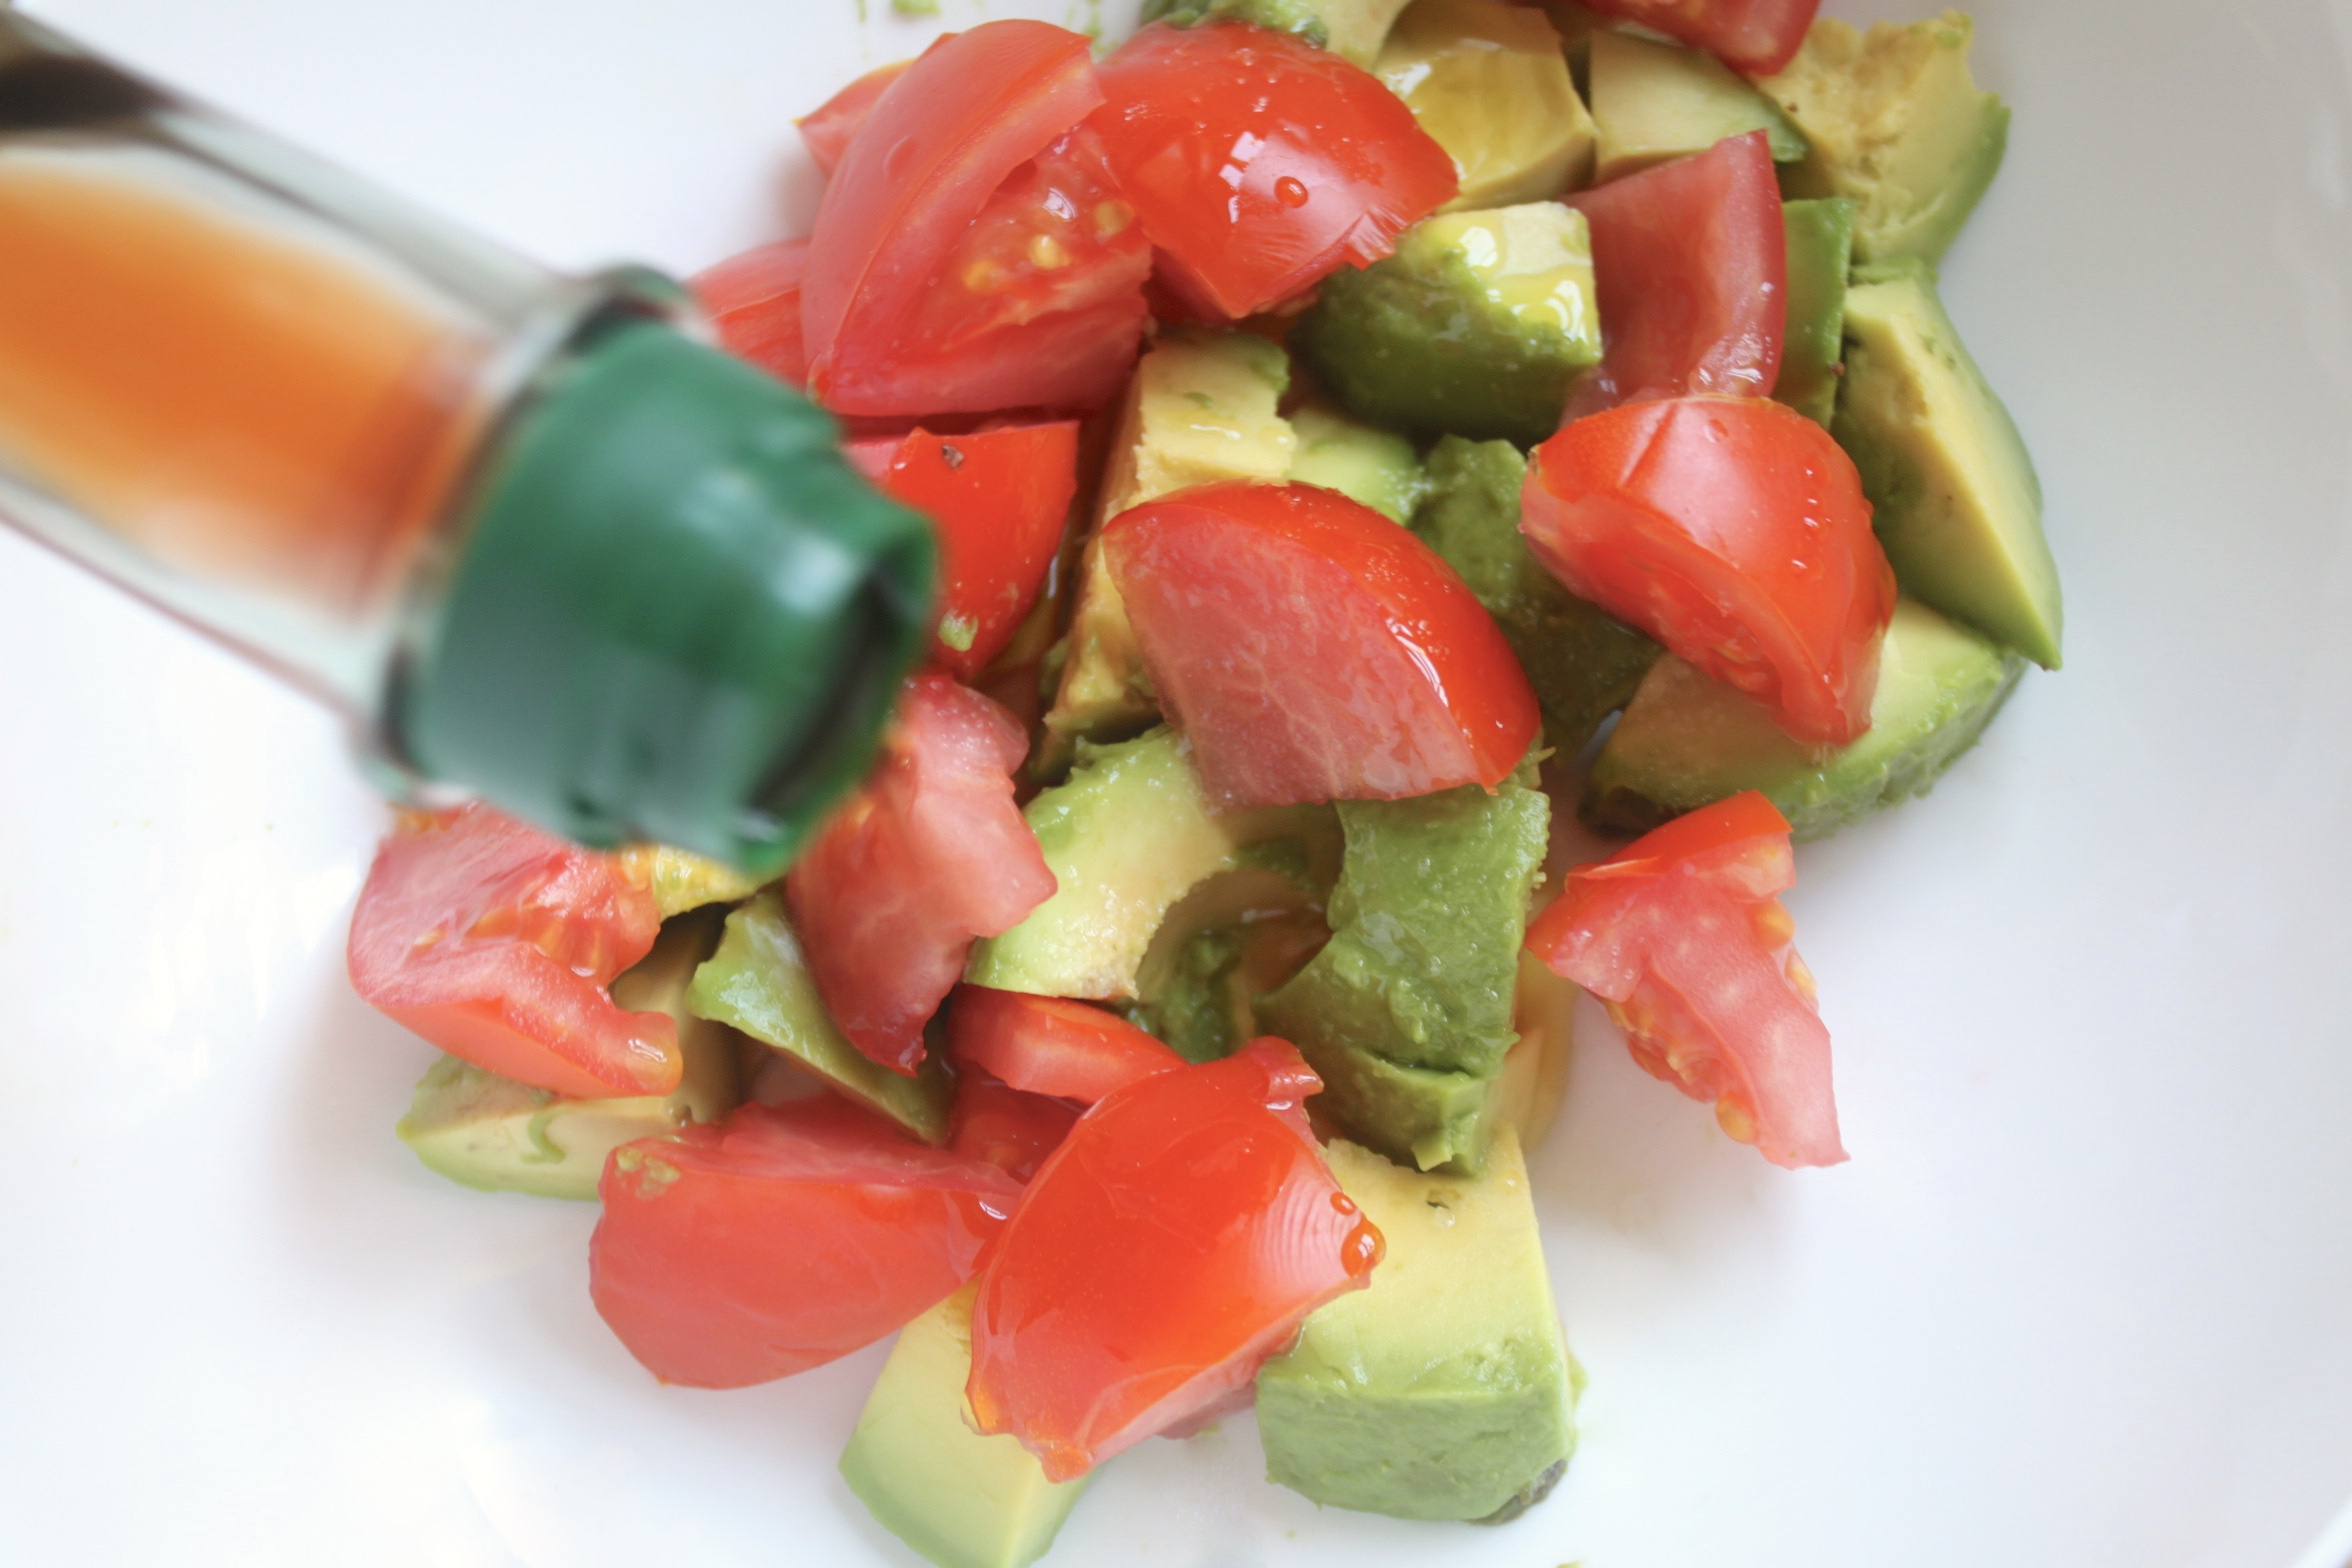 adding wine vinegar to avocado and tomato salad